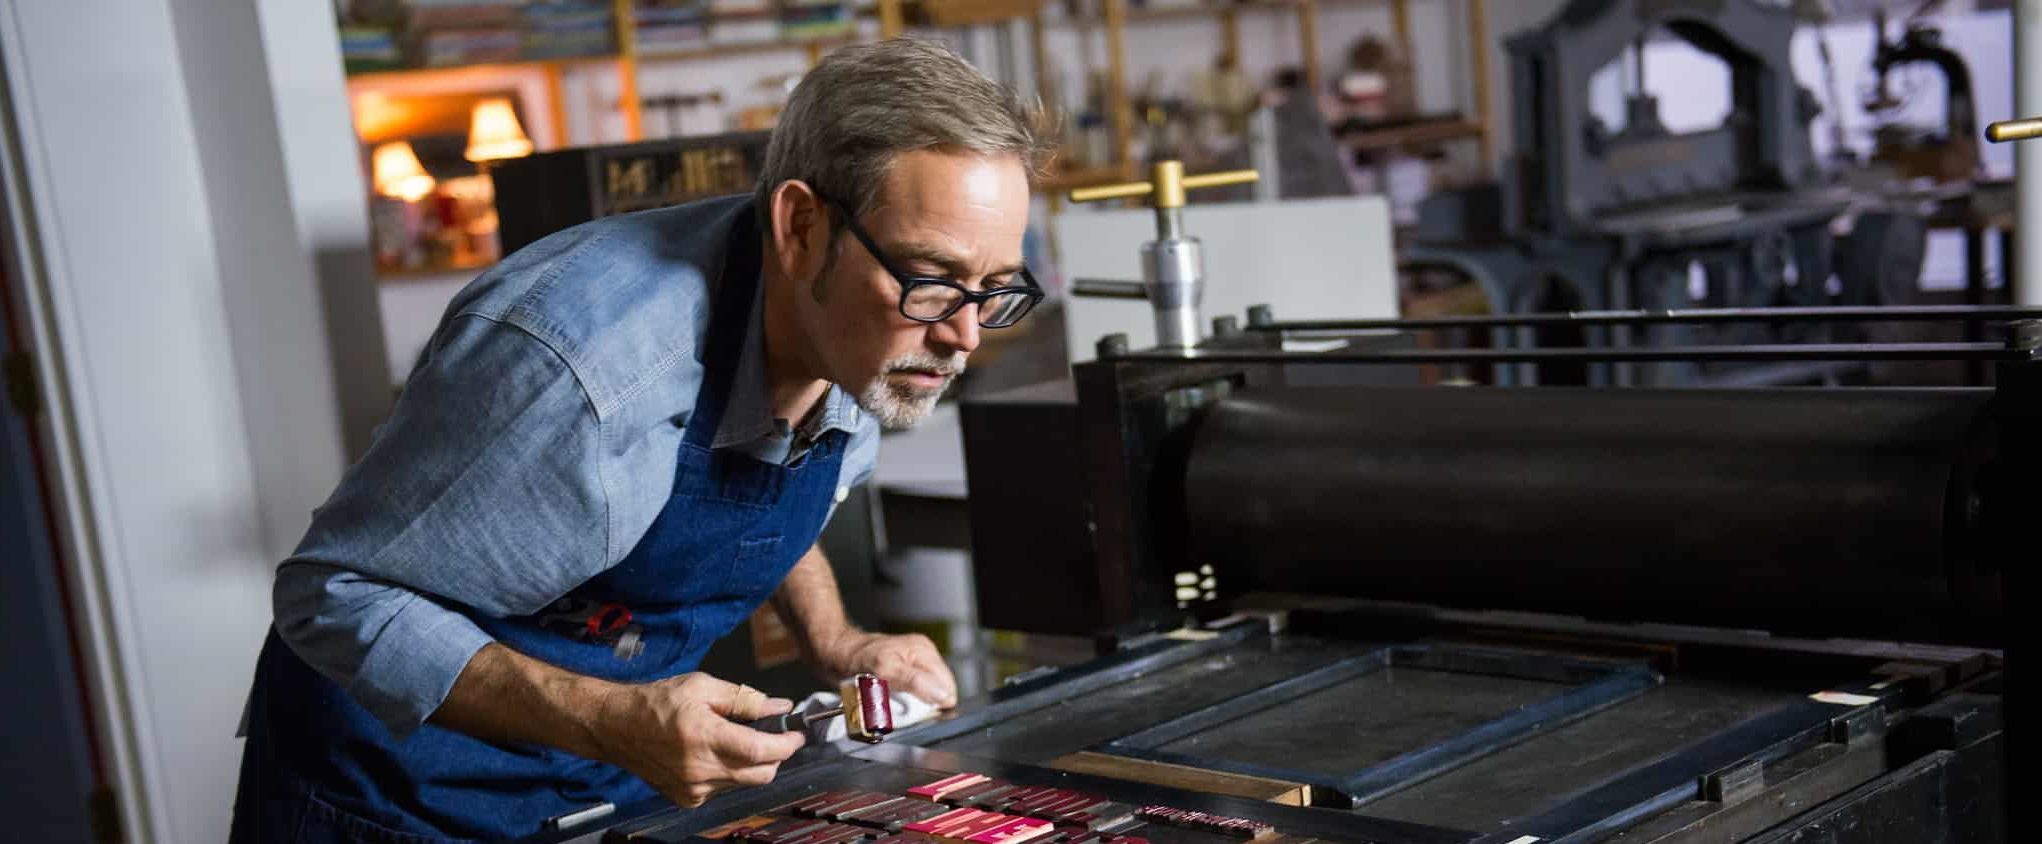 Man working on letter press for art project.